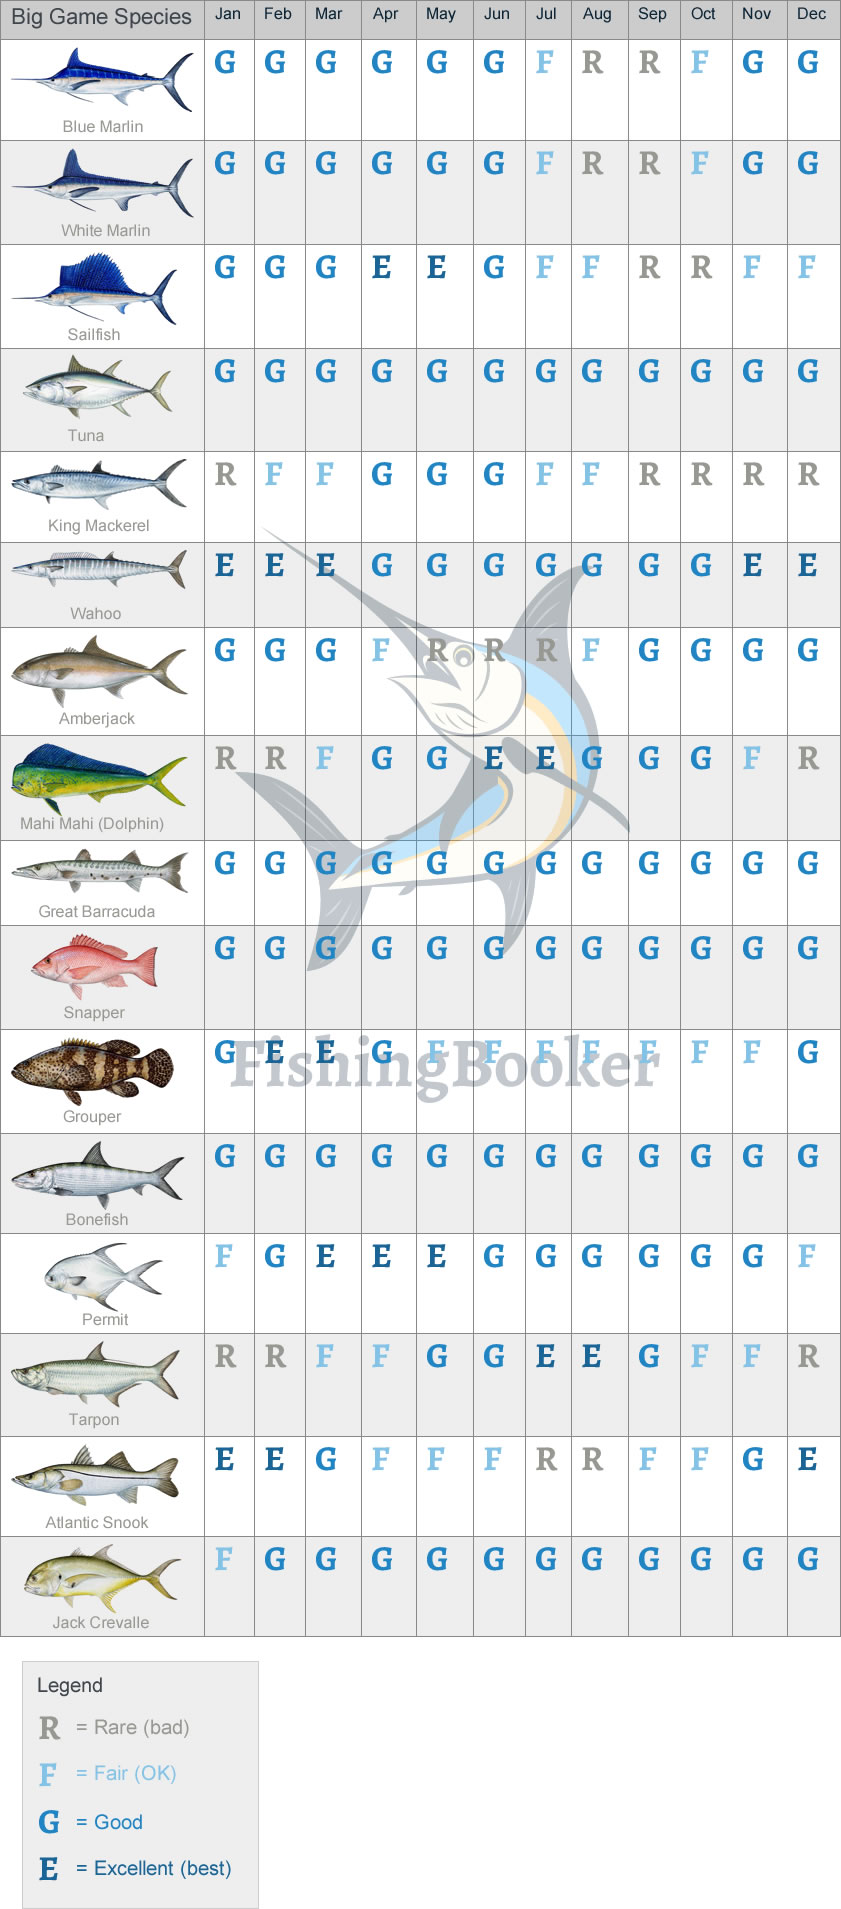 fishing_calendar_belize